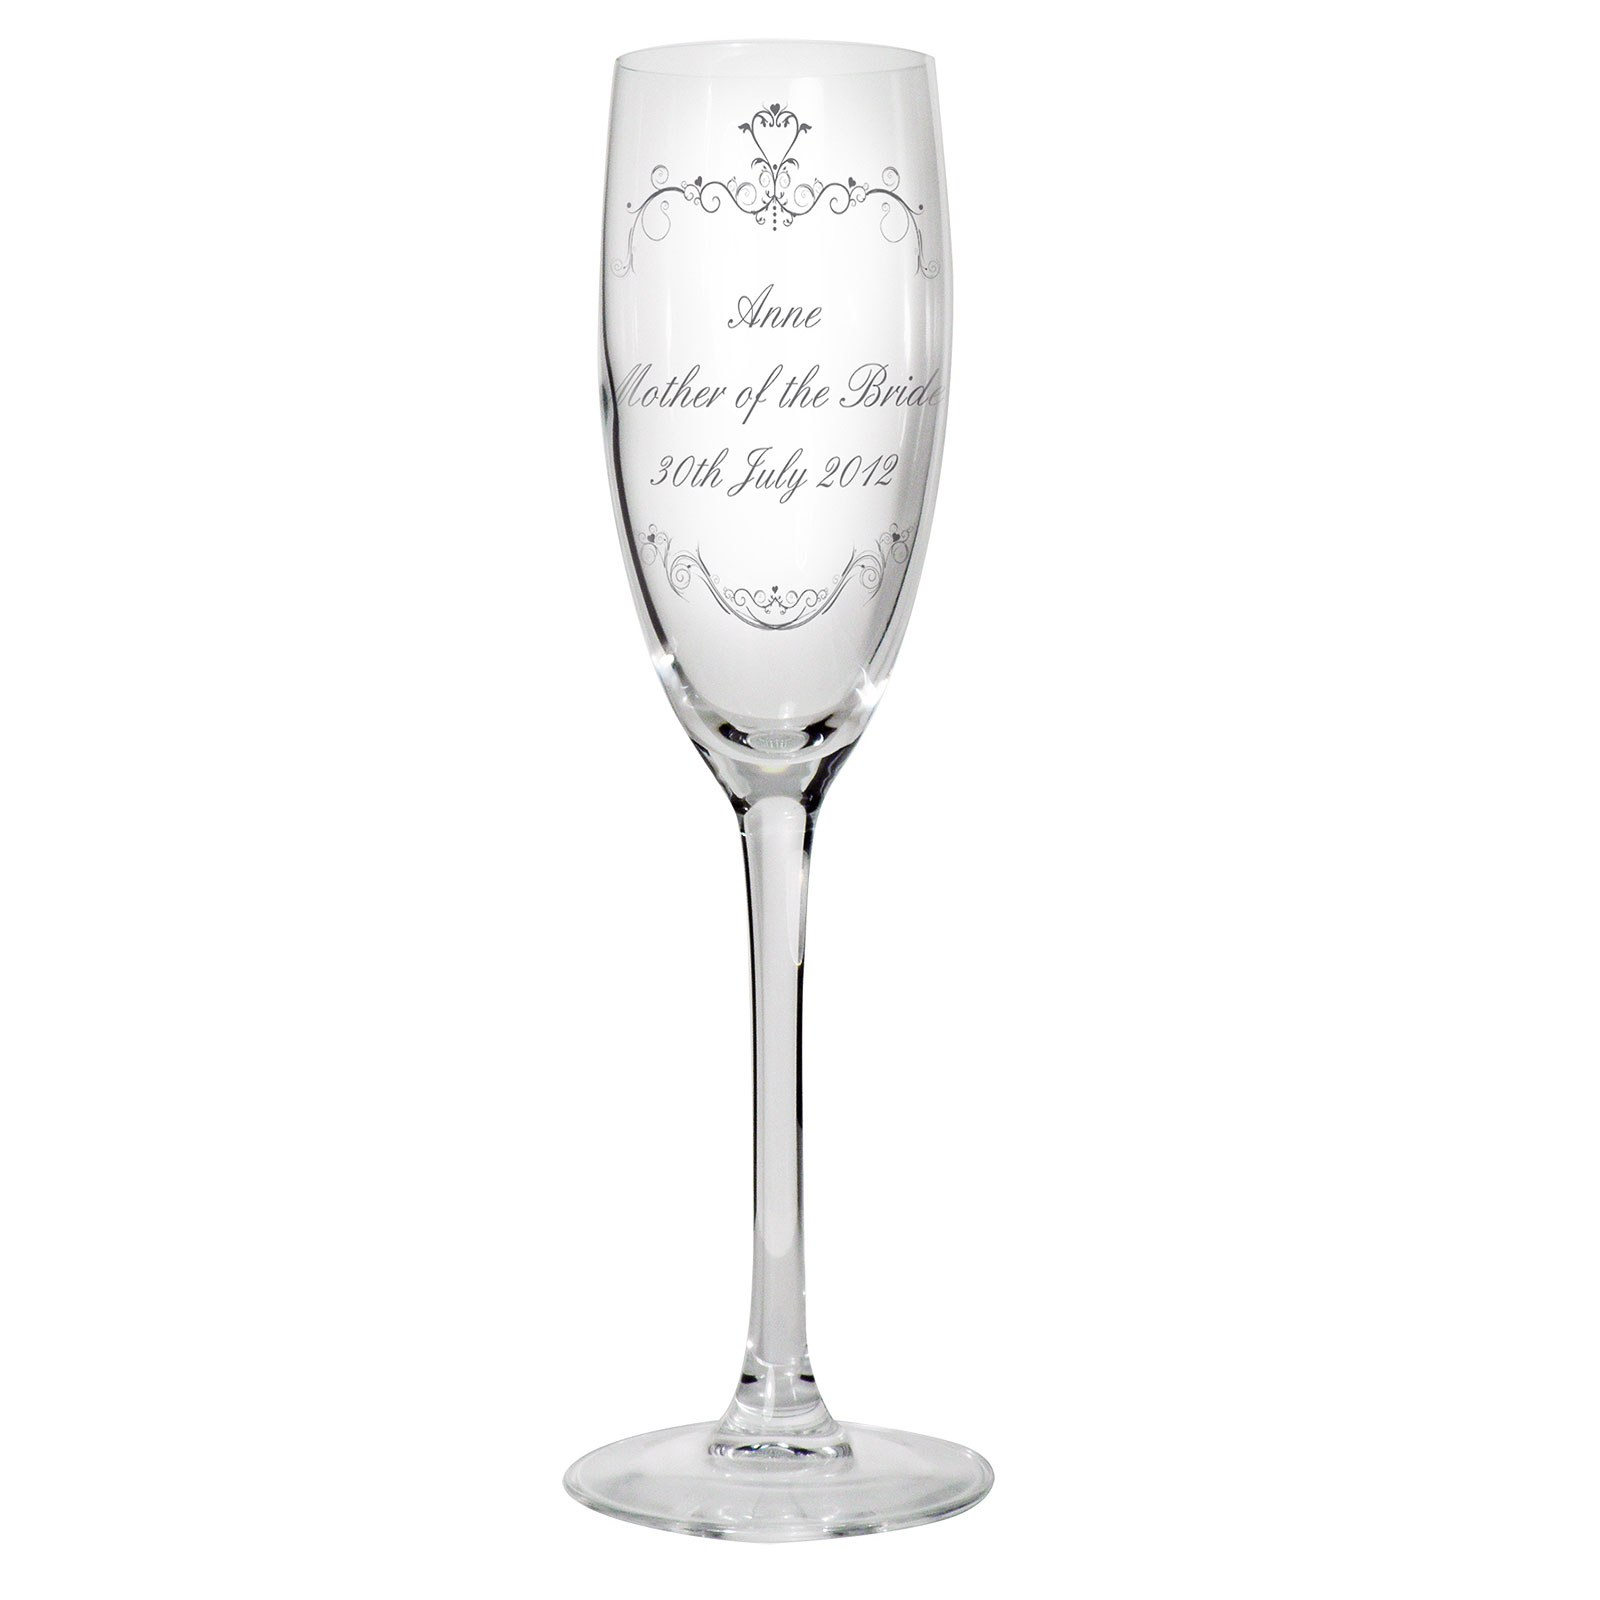 Ornate Swirl Glass Flute Personalized